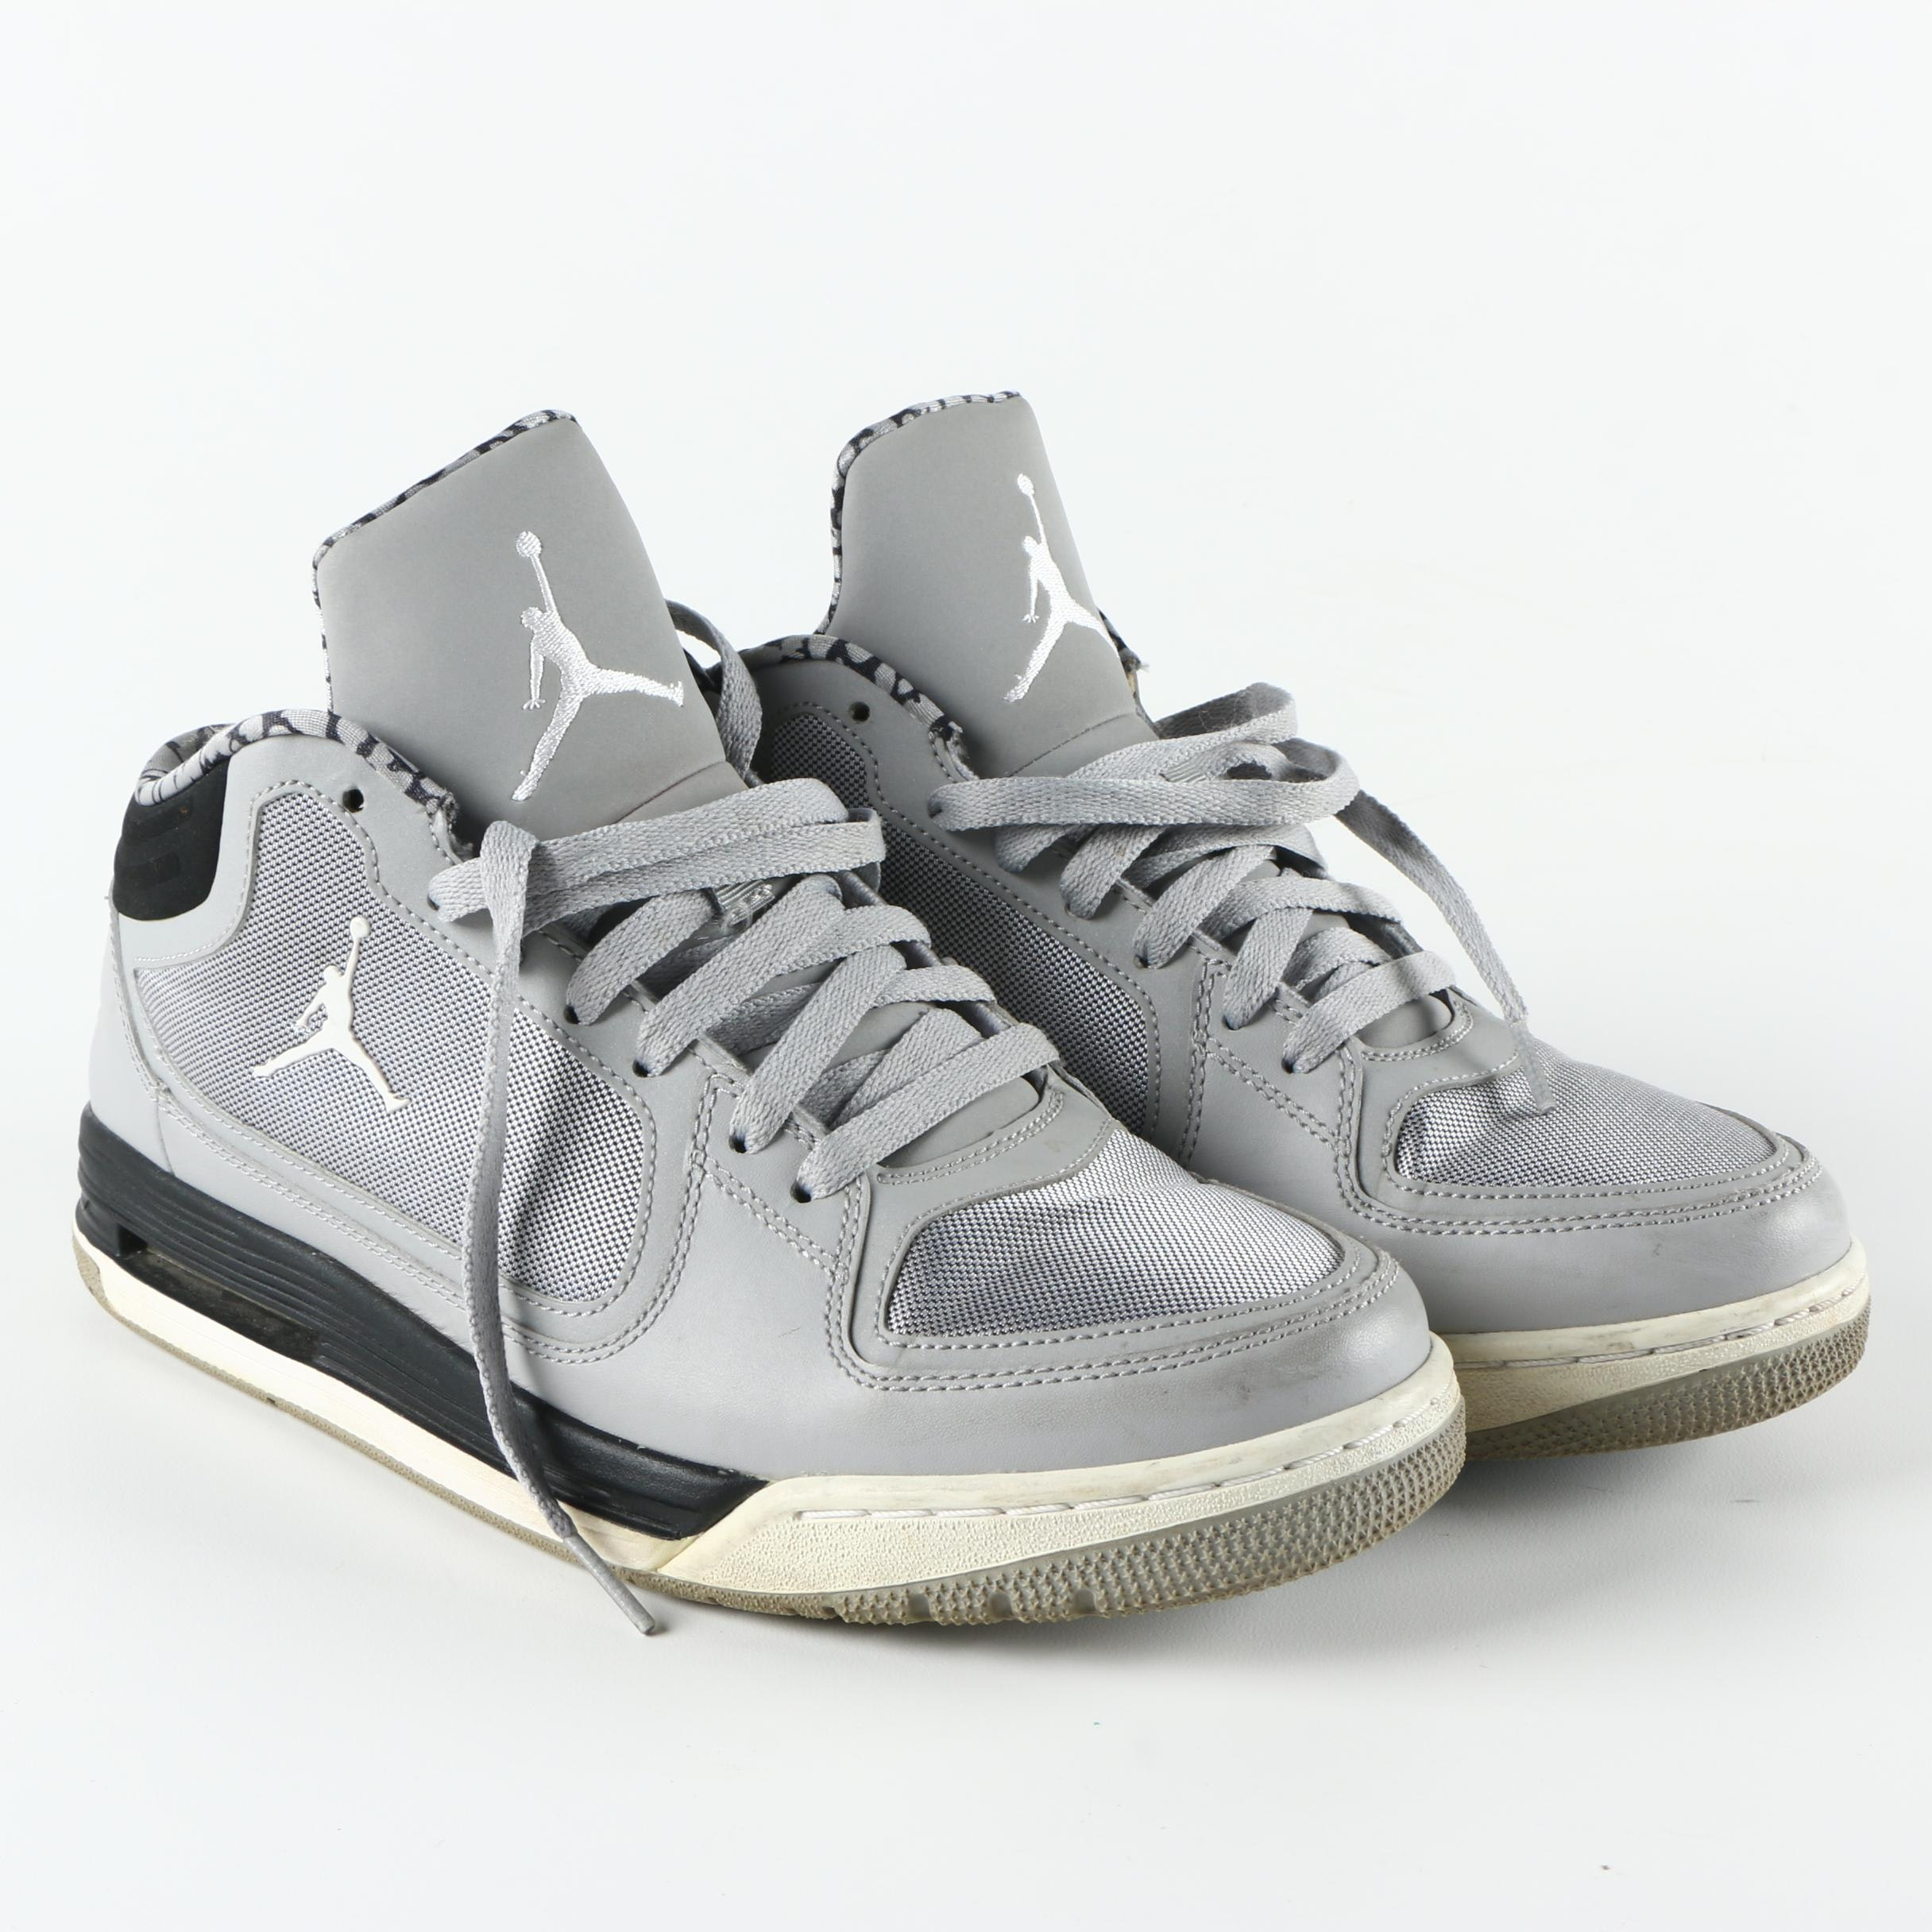 Men's Air Jordan Post Game Sneakers